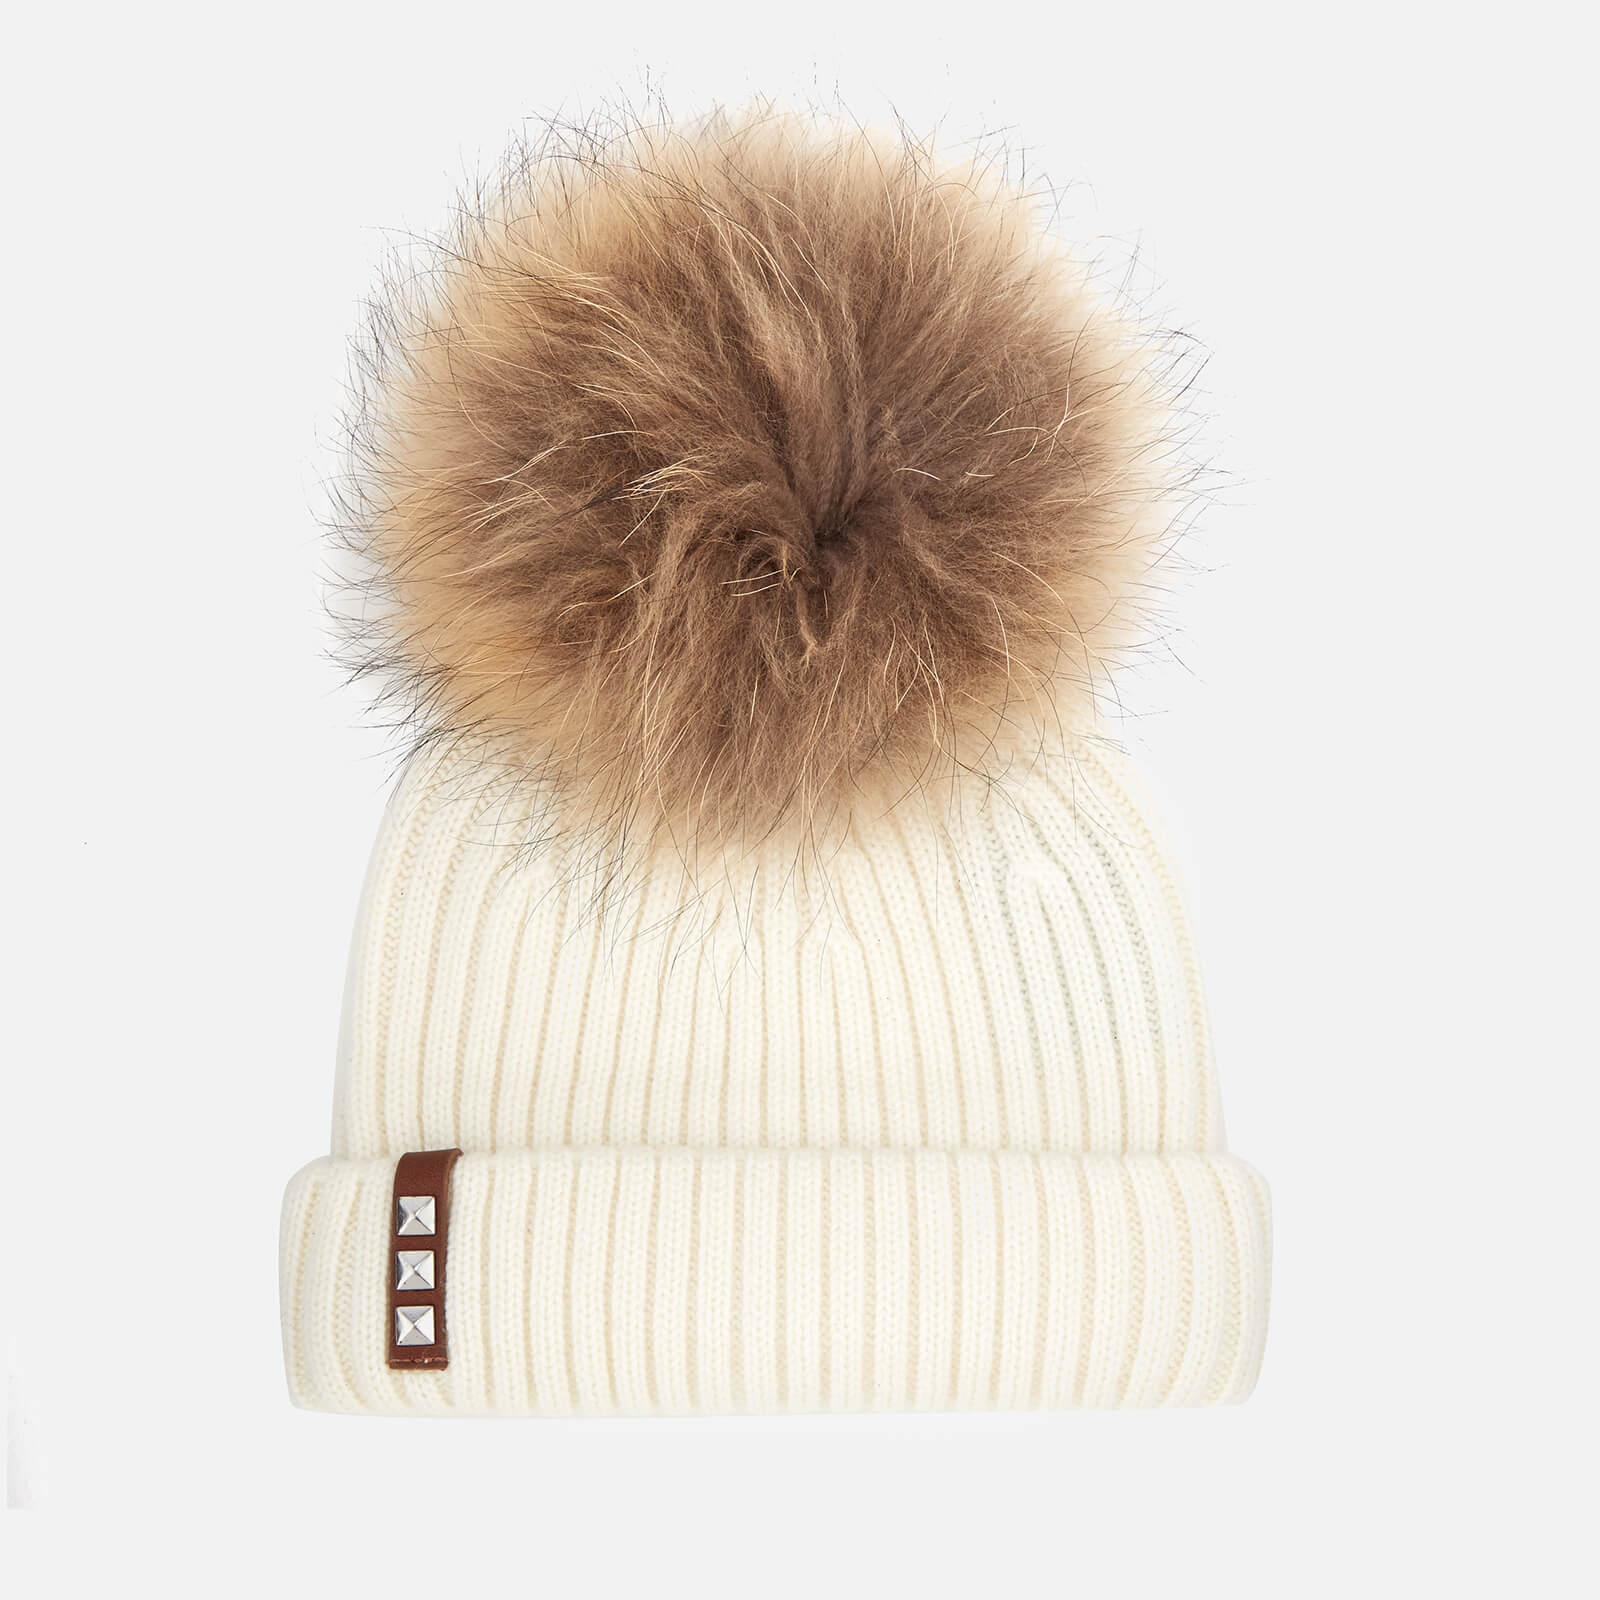 ad49f91d5 BKLYN Women's Merino Wool Hat with Natural Pom Pom - Off White